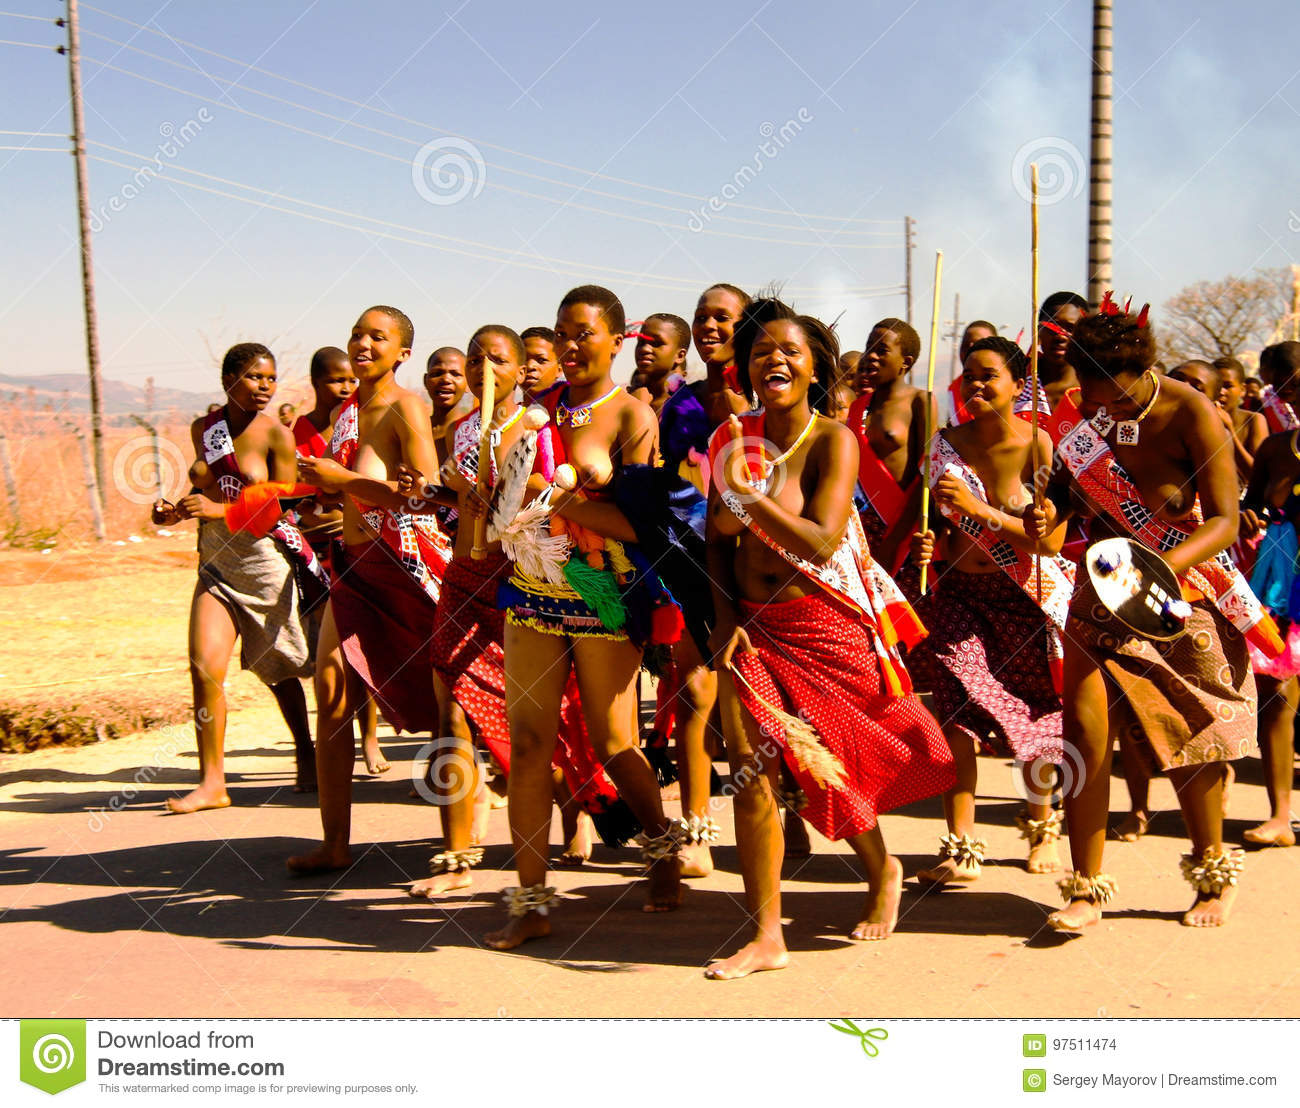 Swaziland women reed dance happens. can